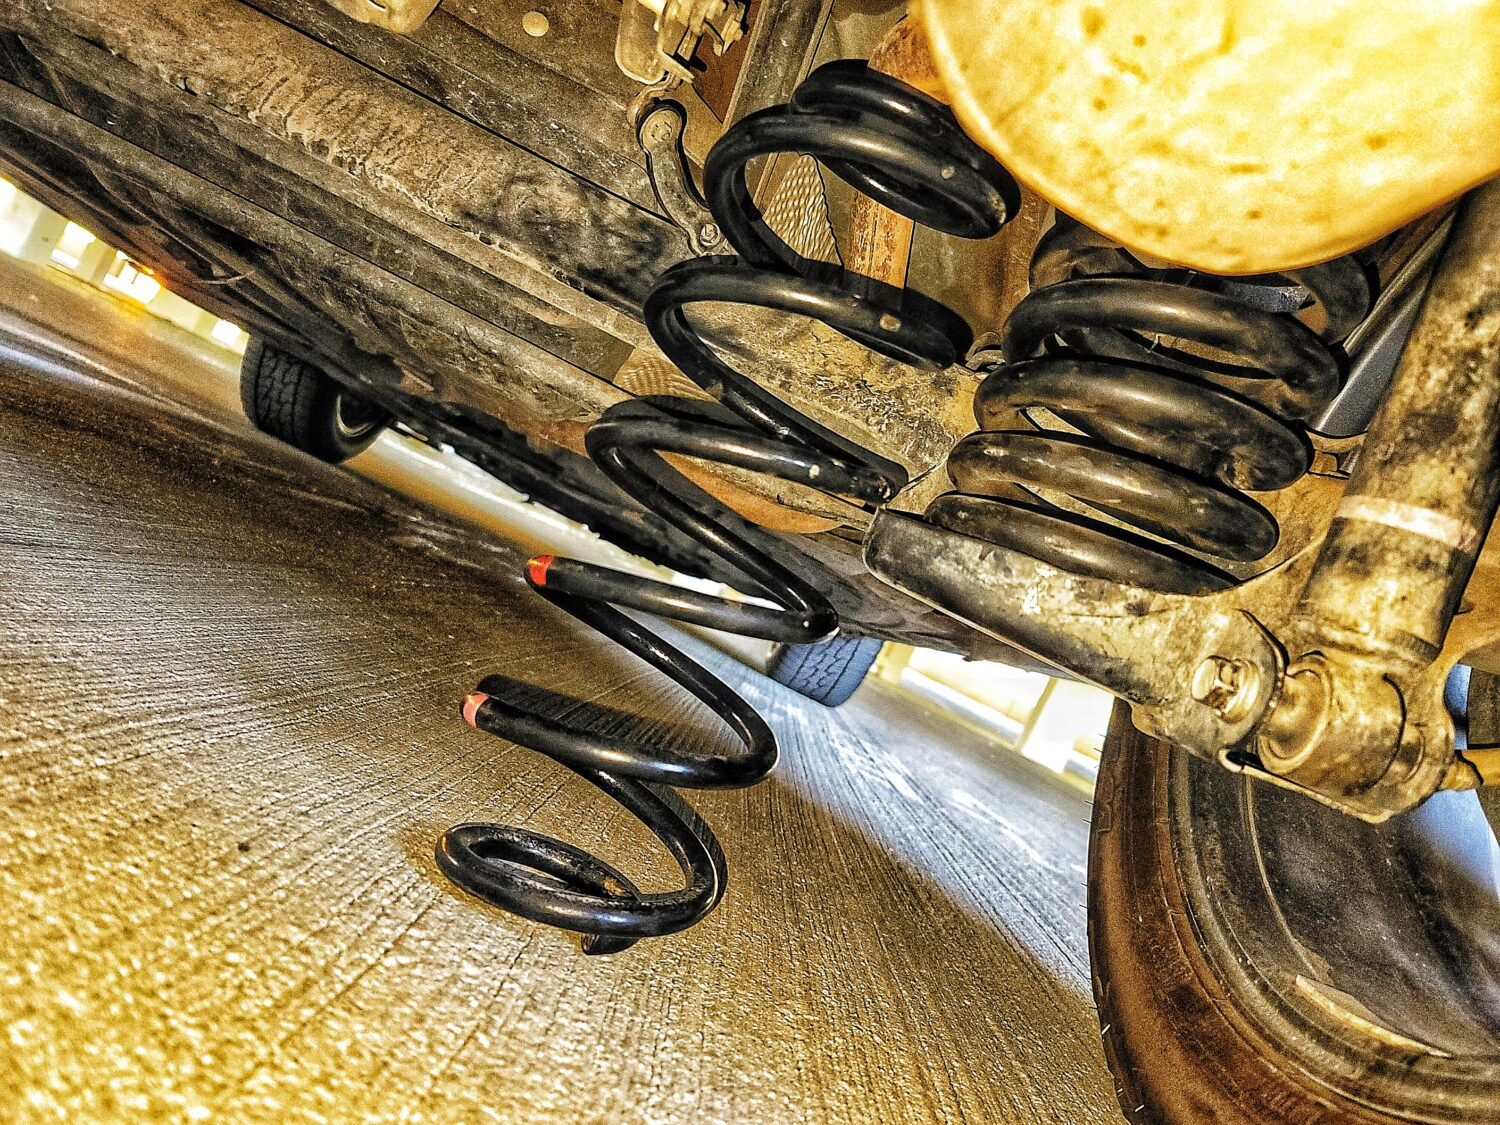 Toyota Prius Heavy Duty Springs Lift Kit OffRoad